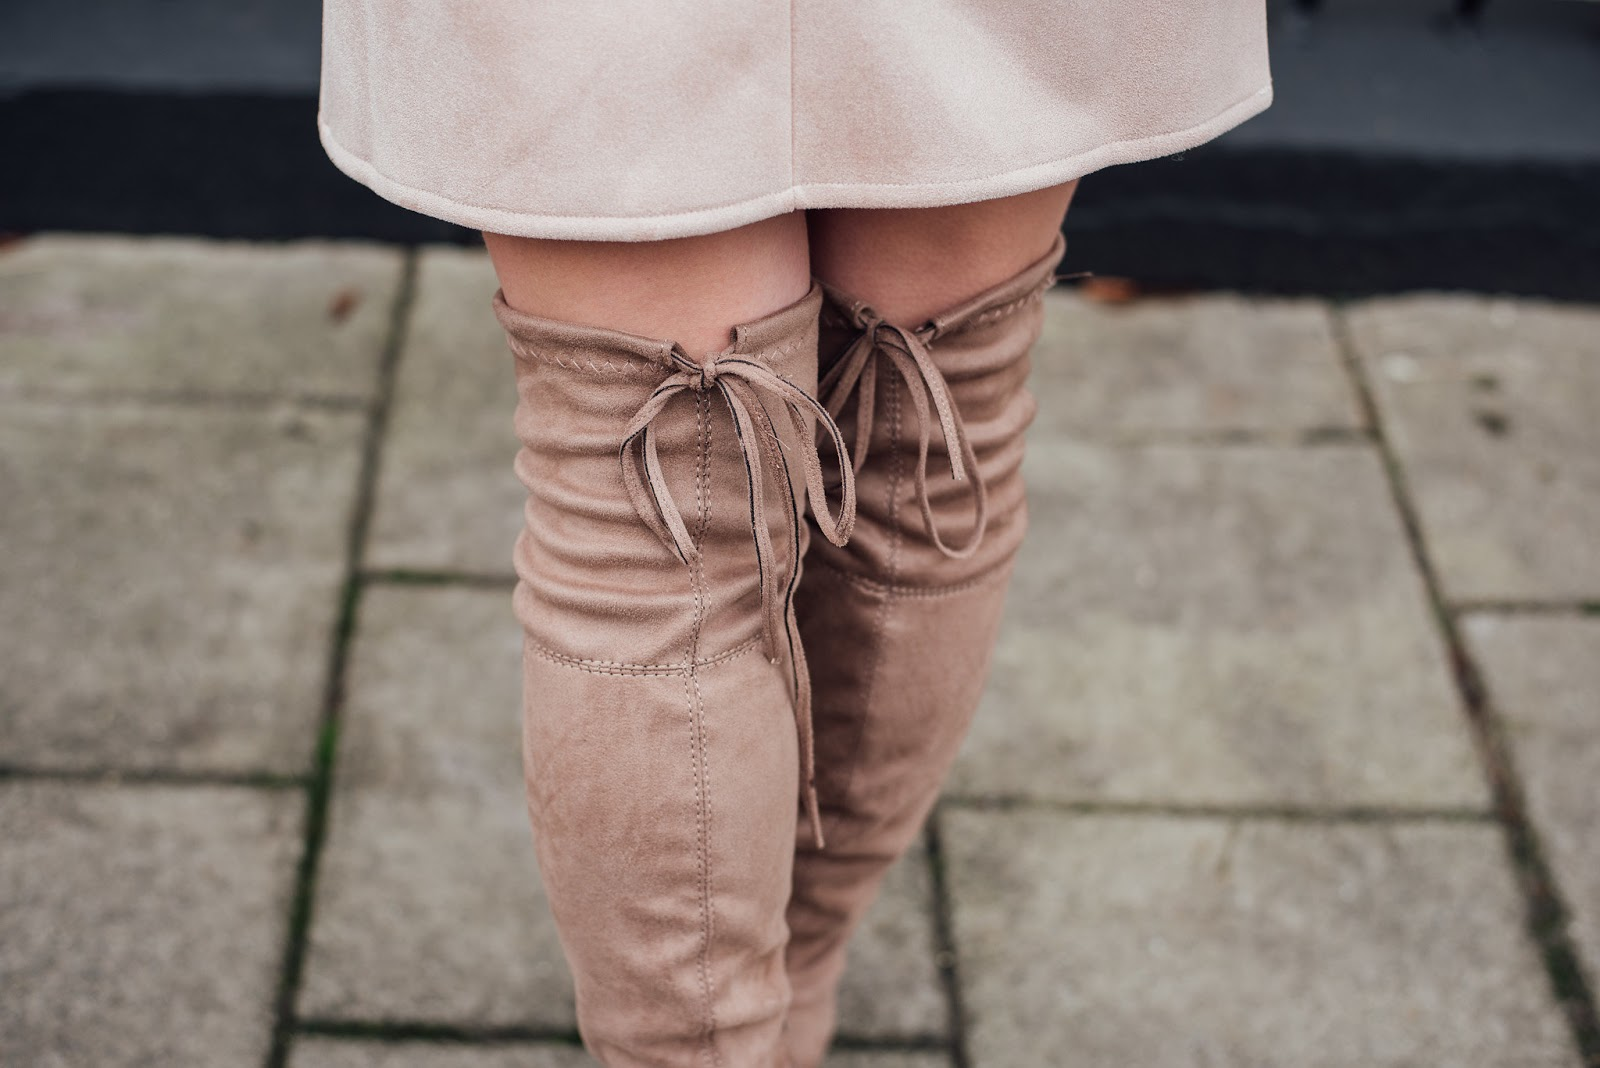 Close Up Detail Shot of Brand Attic Beige Over the Knee Boots with Tie Back